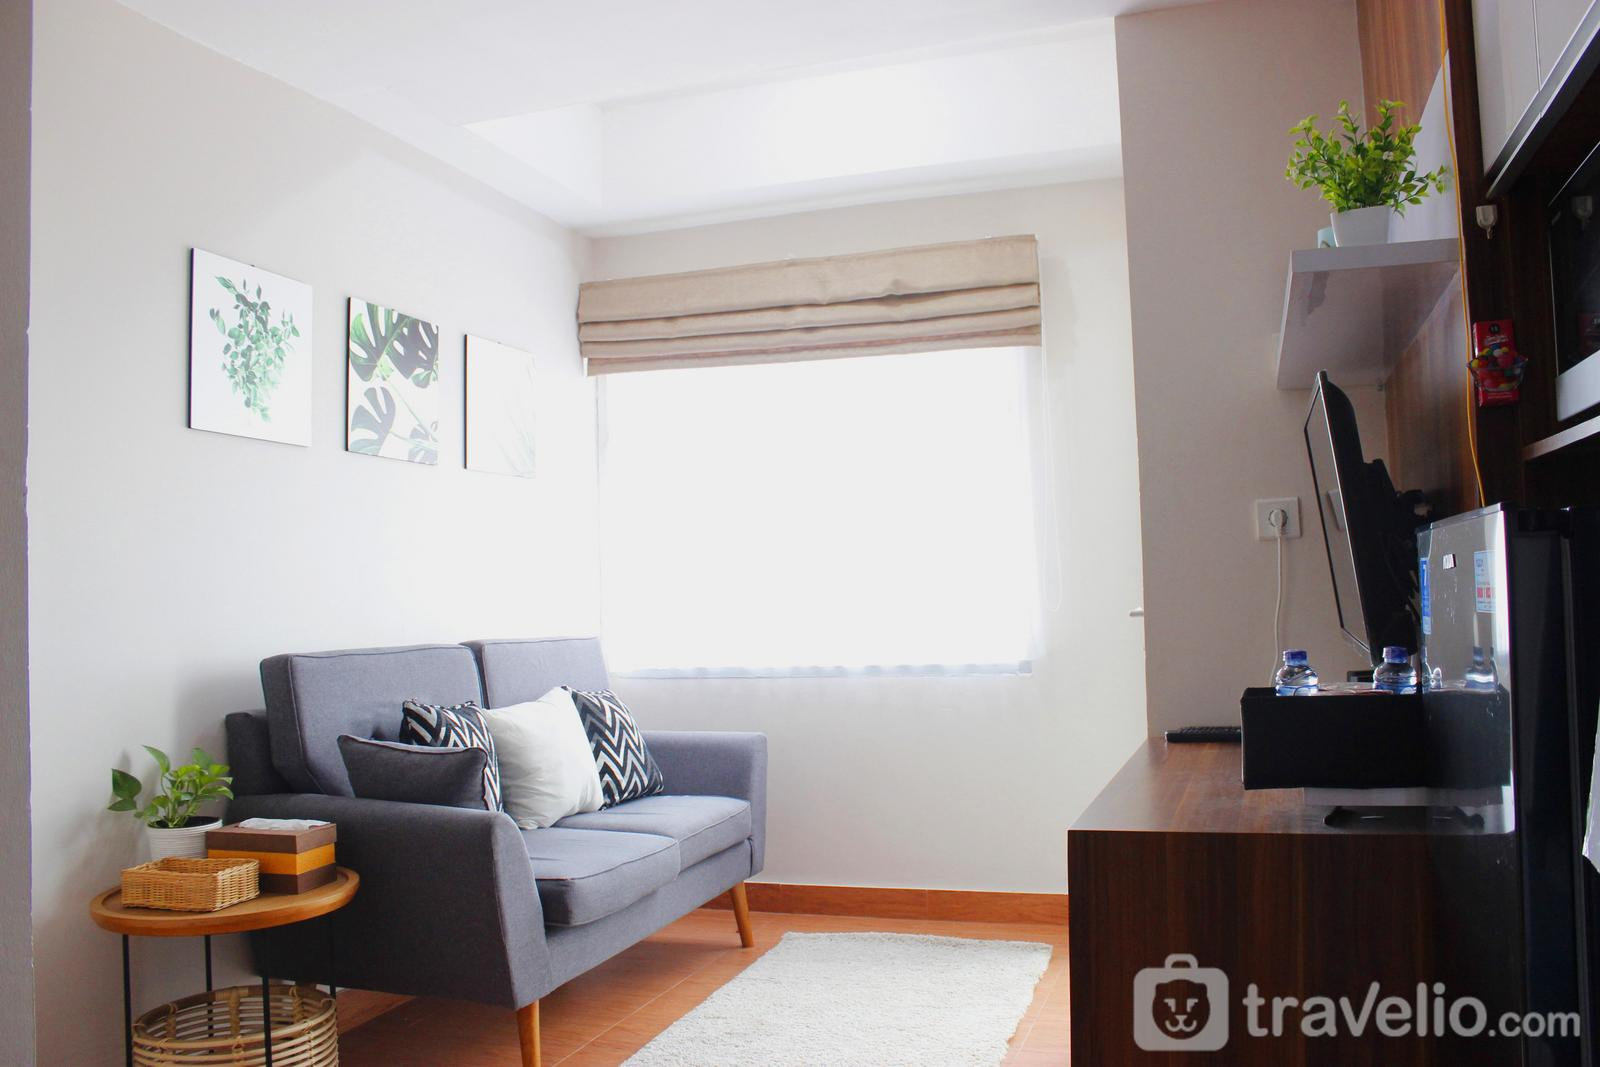 Grand Asia Afrika Apartment - Comfy 2BR Apartment at Grand Asia Afrika Residence By Travelio